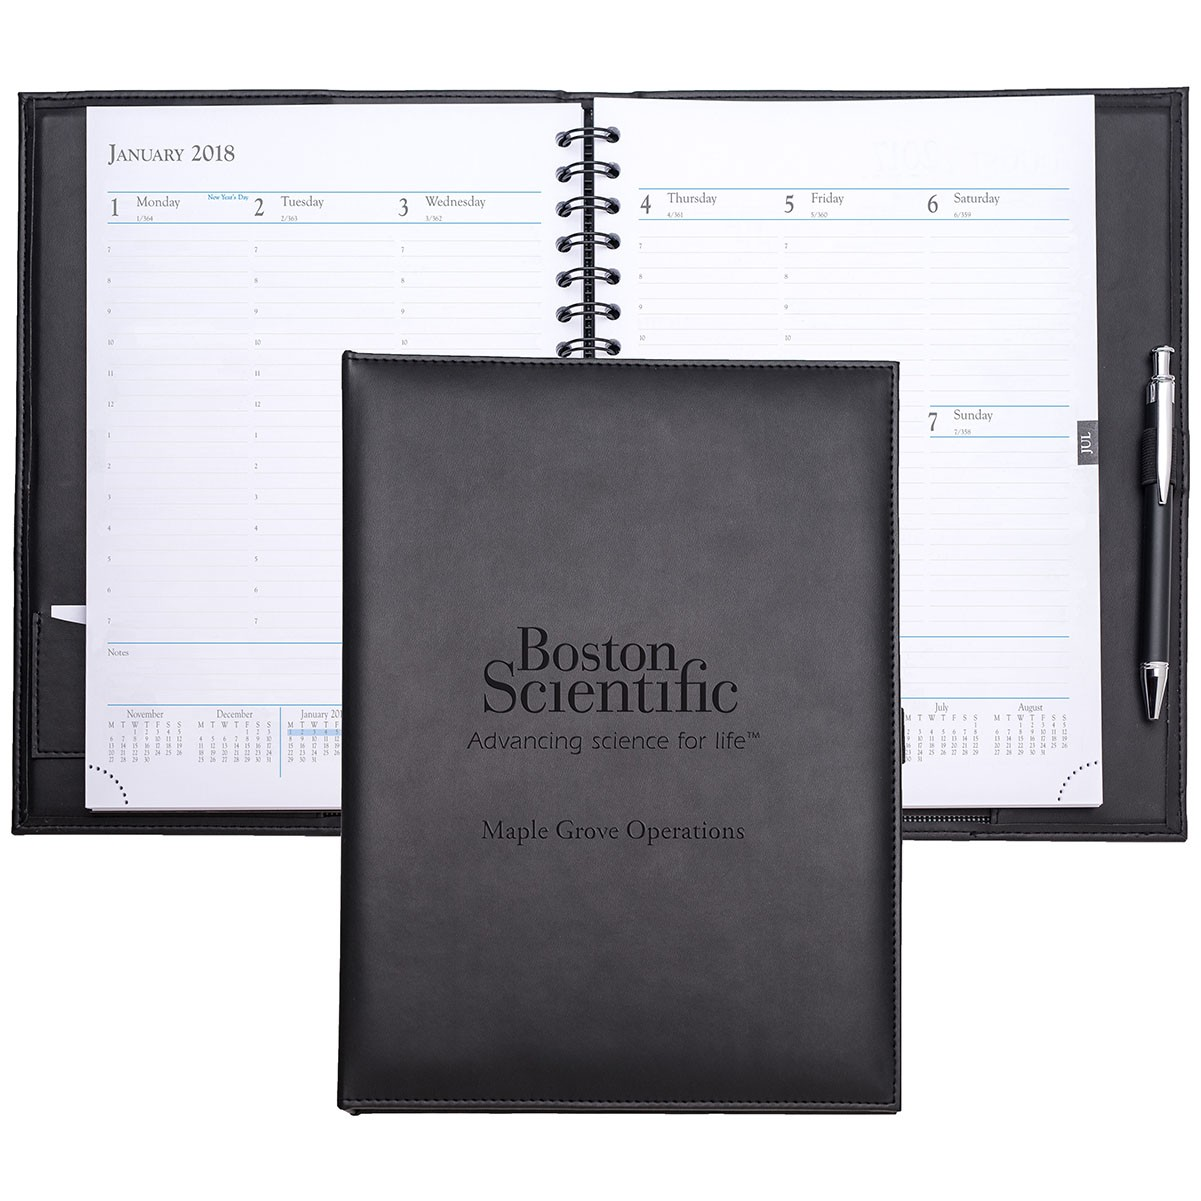 7 7/8 x 10 3/4 Hamilton Time Managers Planner